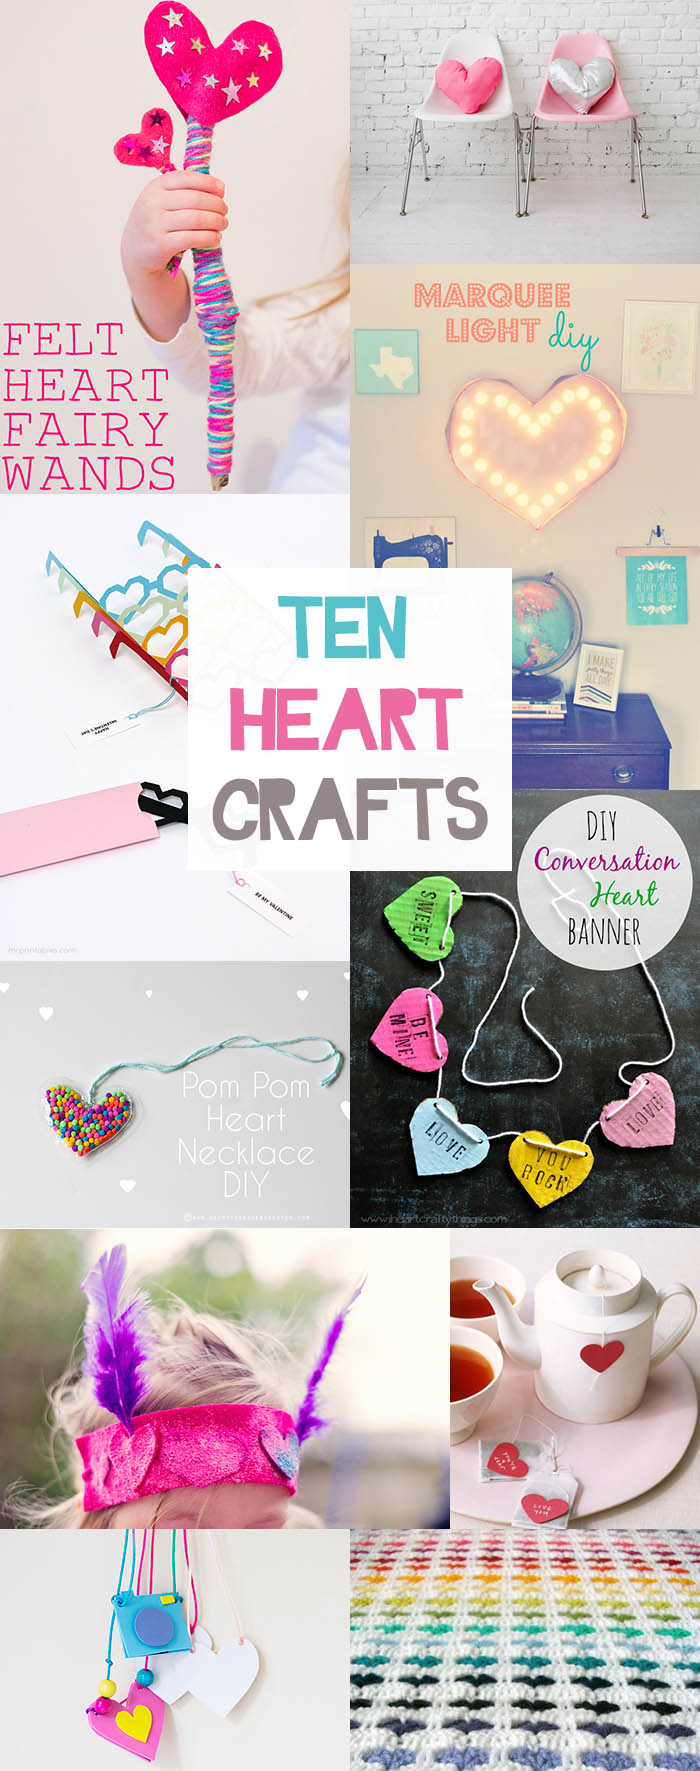 TEN HEART CRAFTS